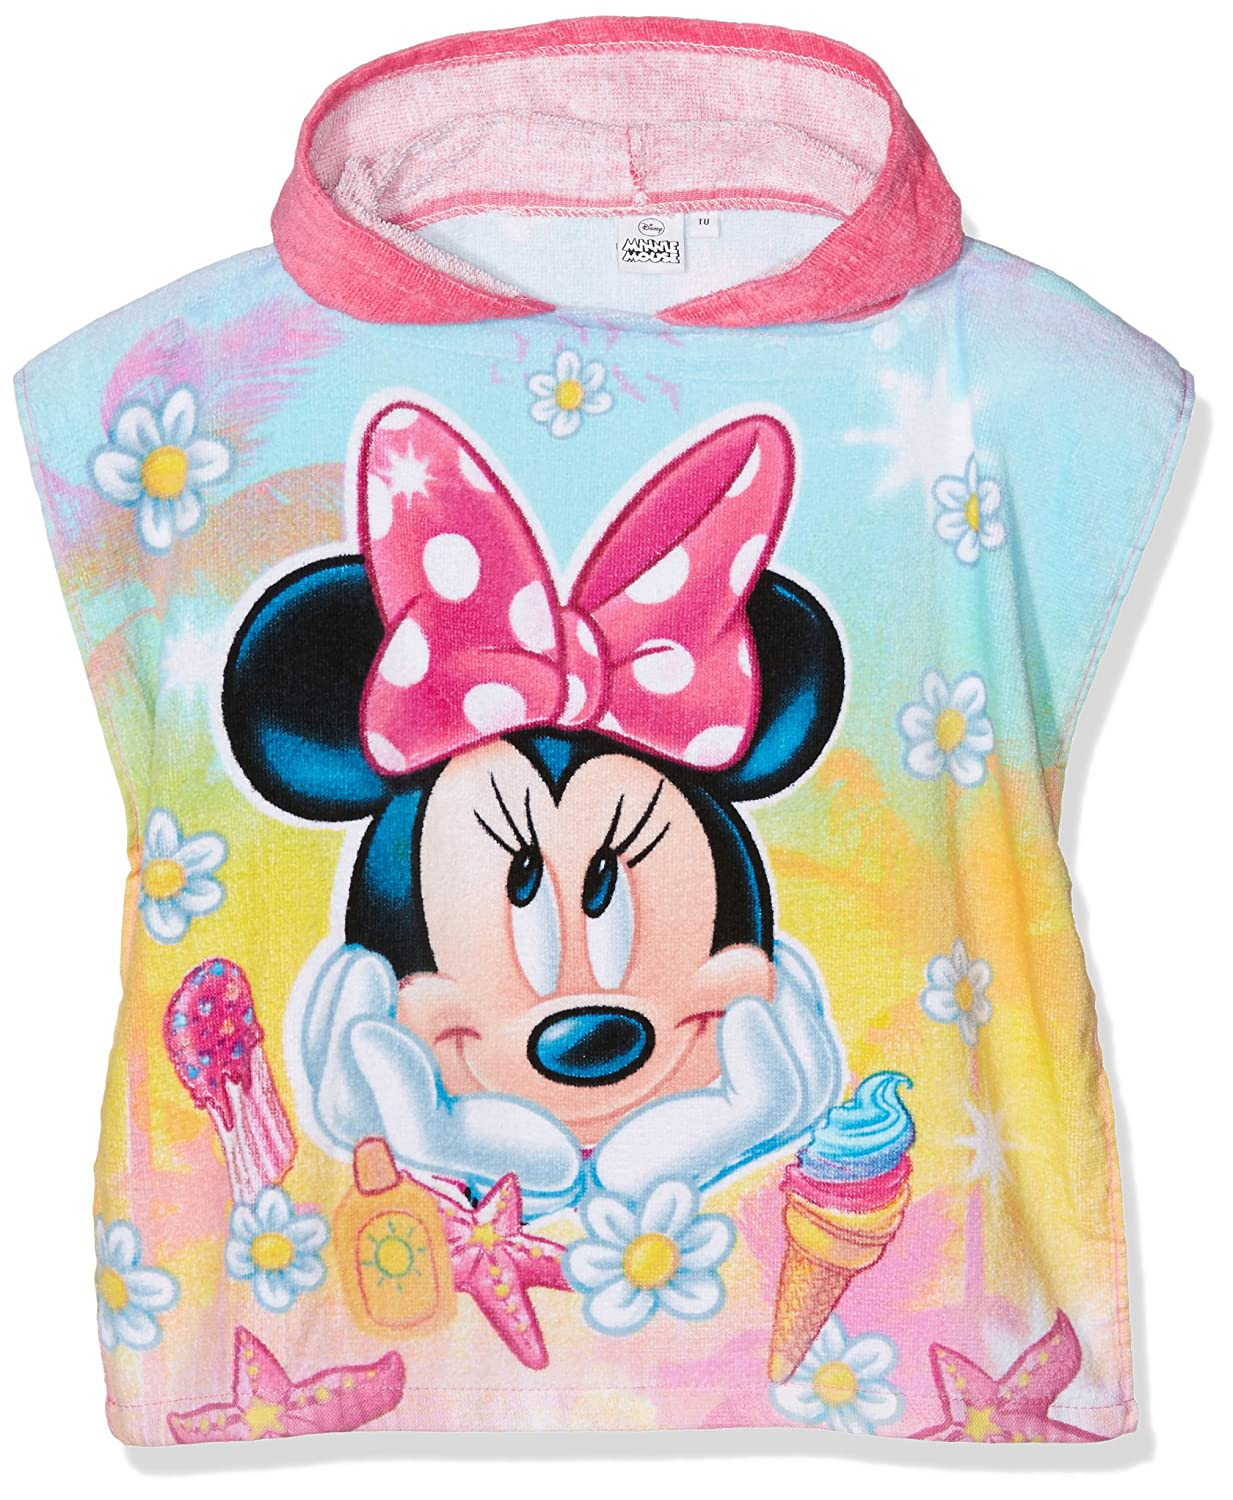 Disney Minnie Mouse Poncho Pink (Rose) One Size QE1841